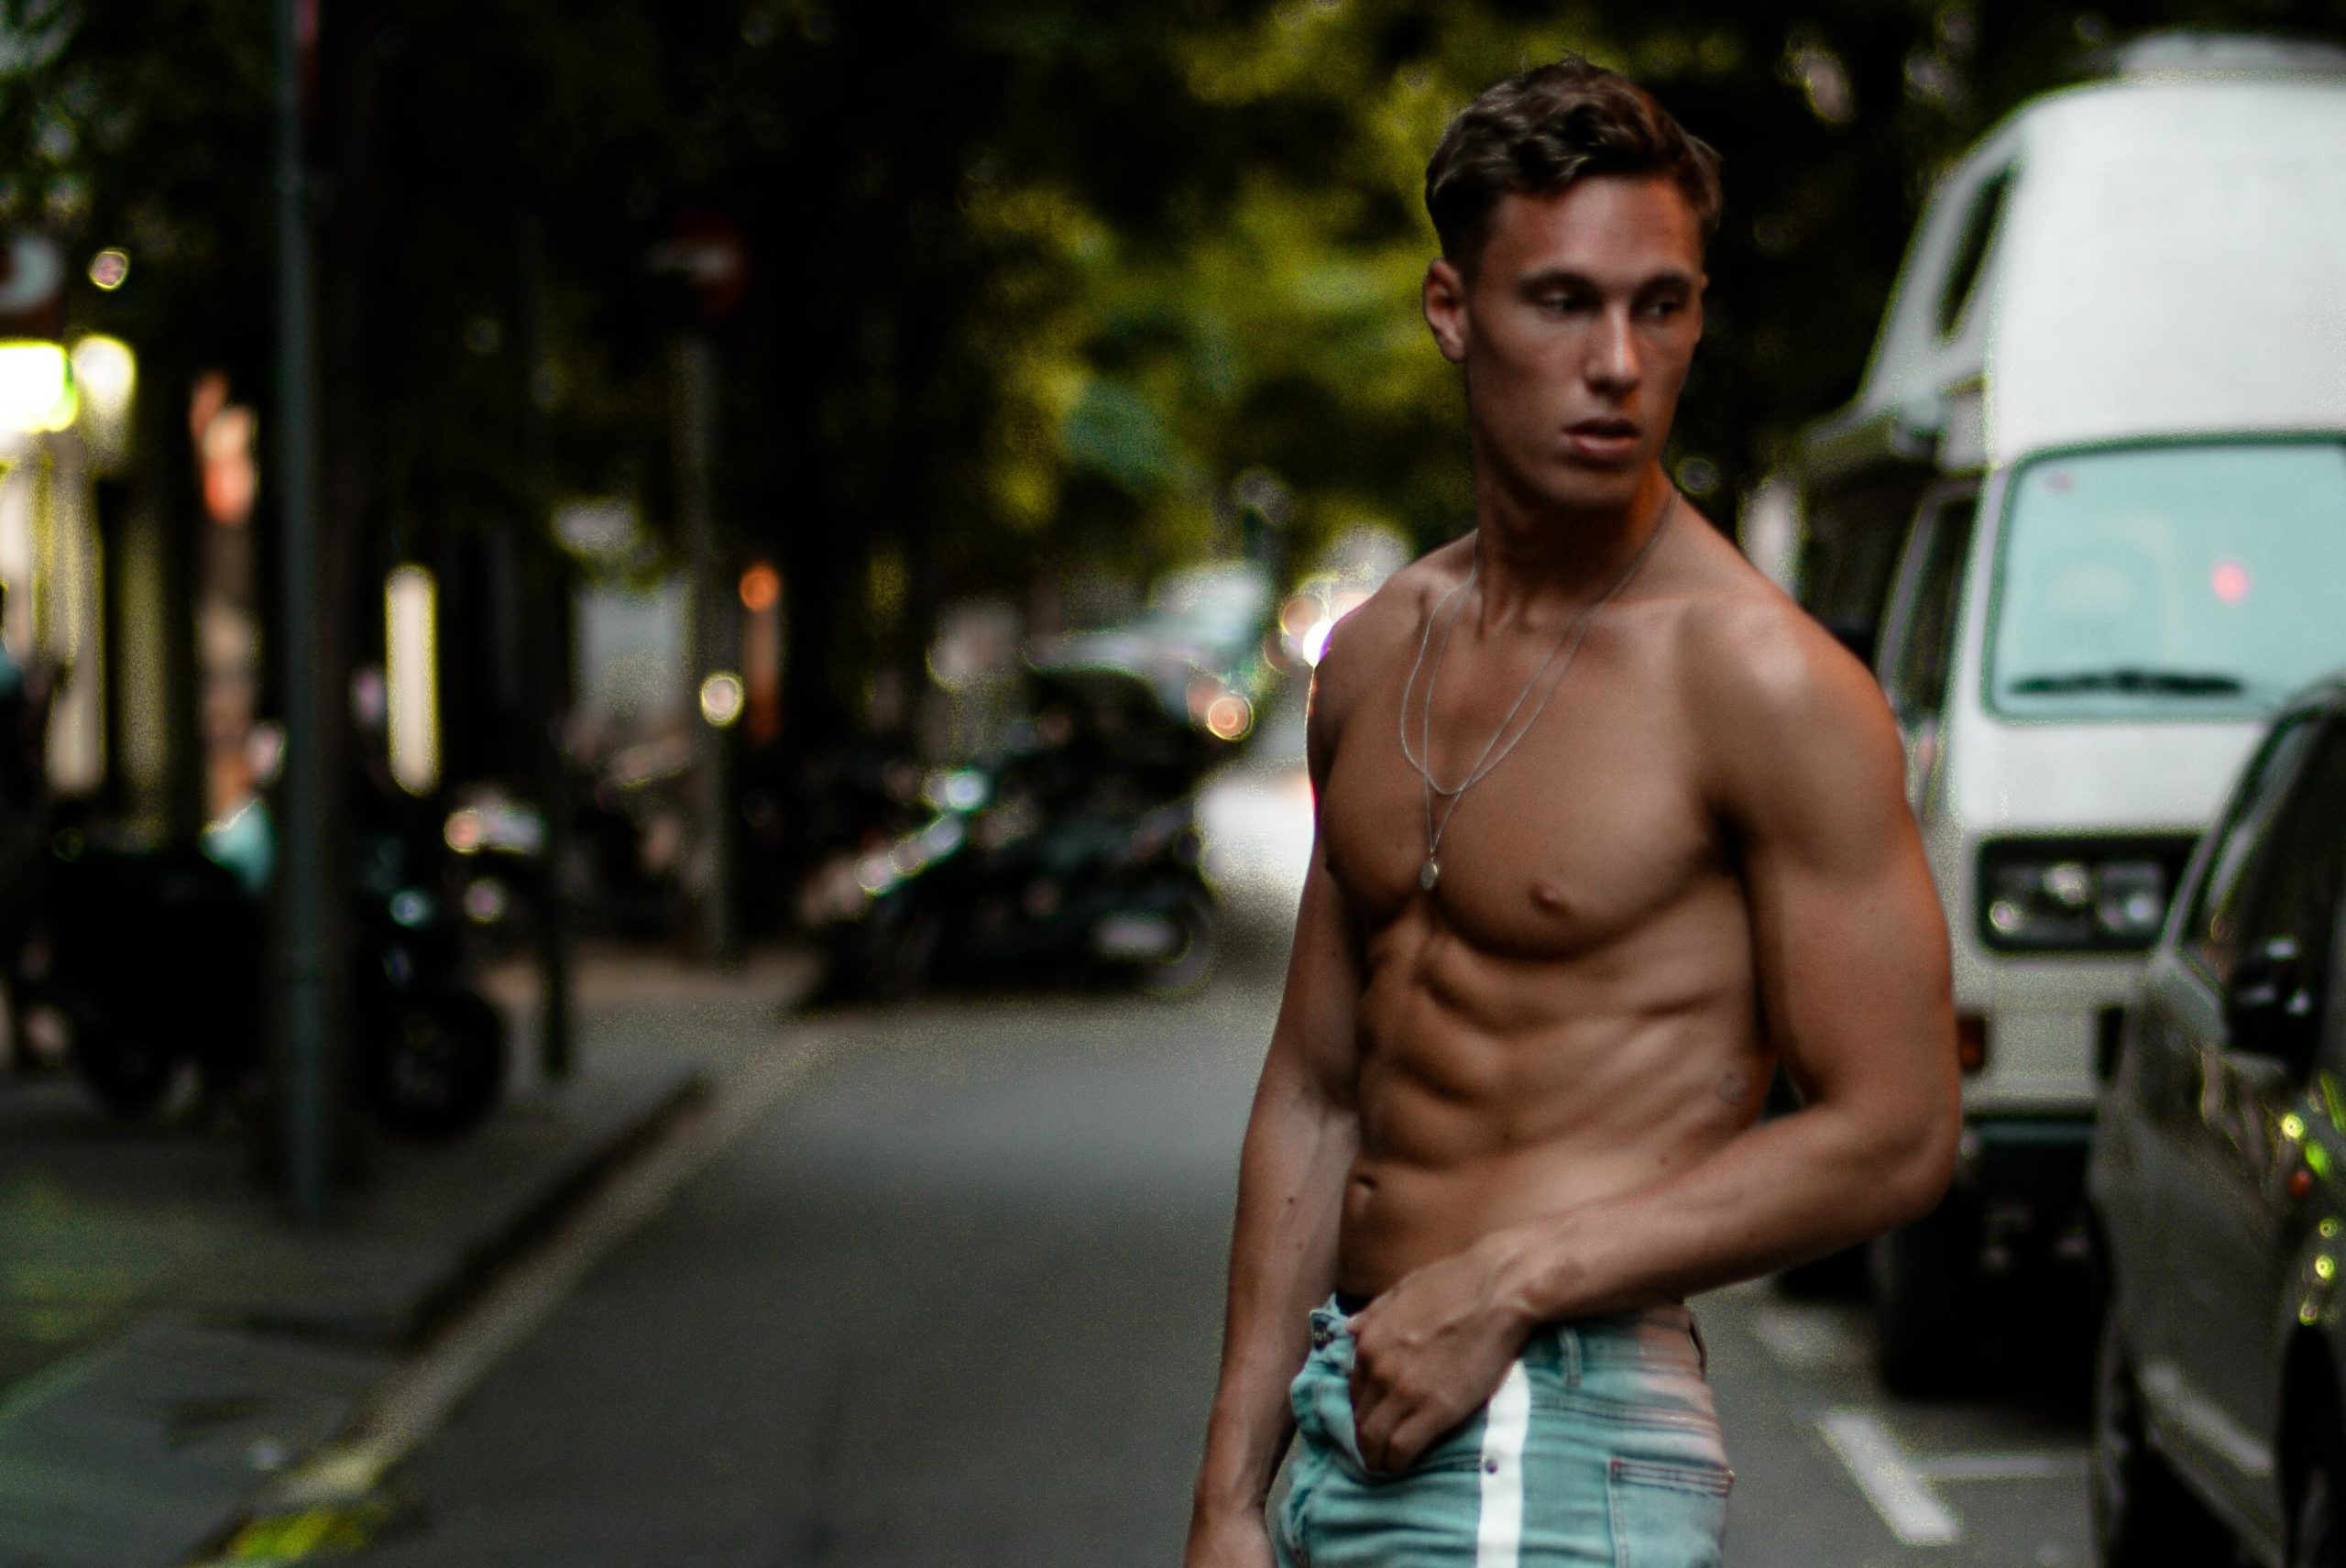 Shirtless Man with Abs